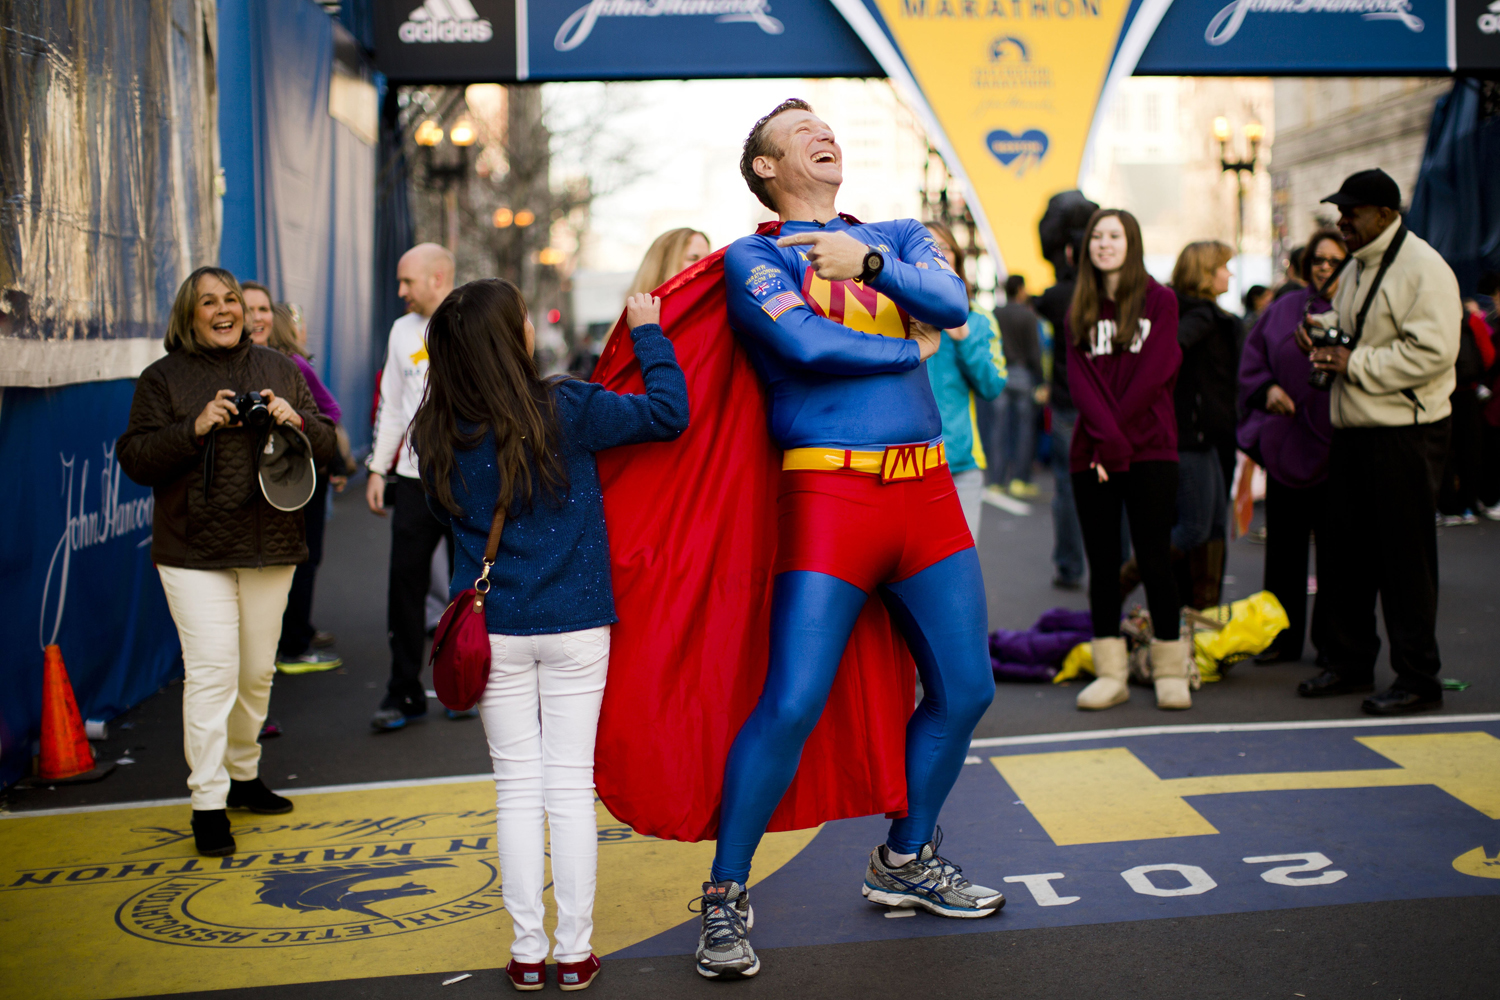 Trent Morrow of Sydney, Australia, also know as  Marathon Man  laughs as Andrea Olivo of Venezuela tugs on his cape as she has her photo made ahead of Monday's 118th Boston Marathon, Sunday, April 20, 2014.